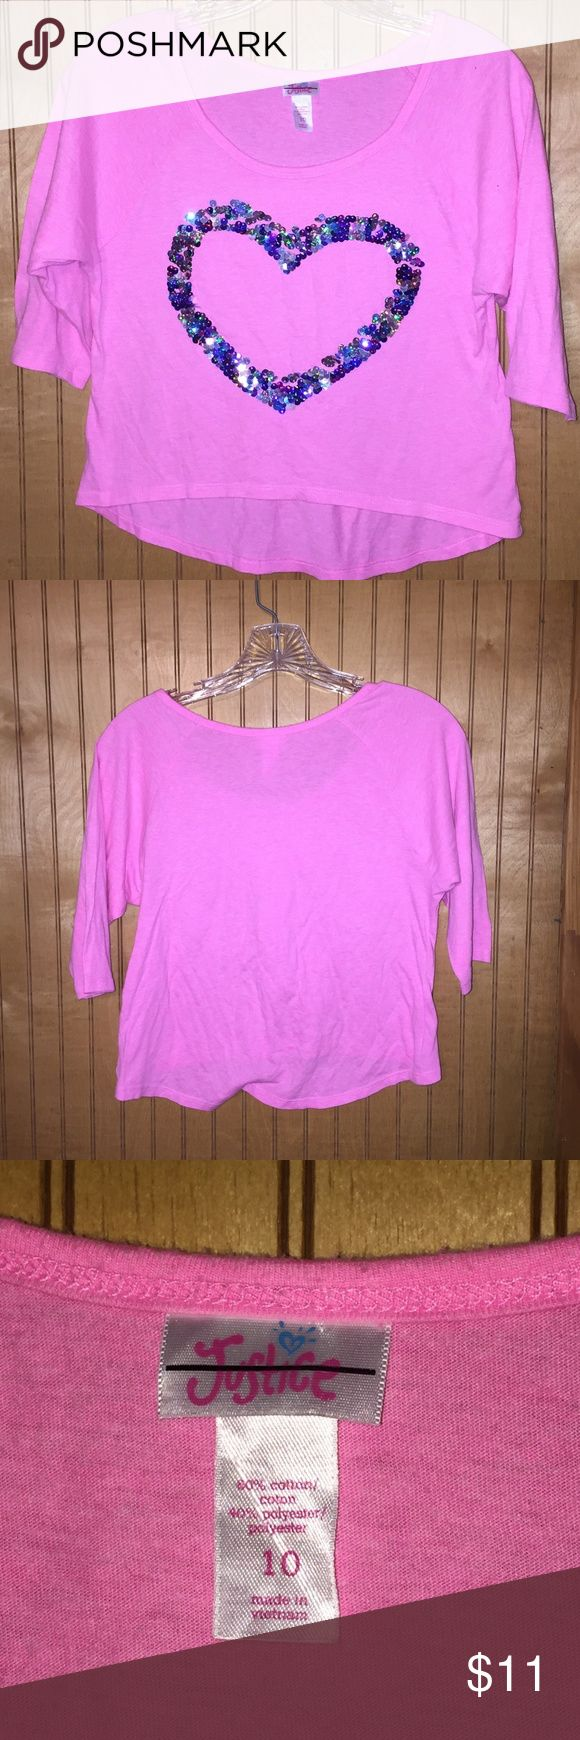 Justice Pink Bling Heart Shirt Size 10 Justice Pink Heart Bling Shirt Tween Size 10 Flowing 3/4 Length Sleeves Justice Tops Tunics